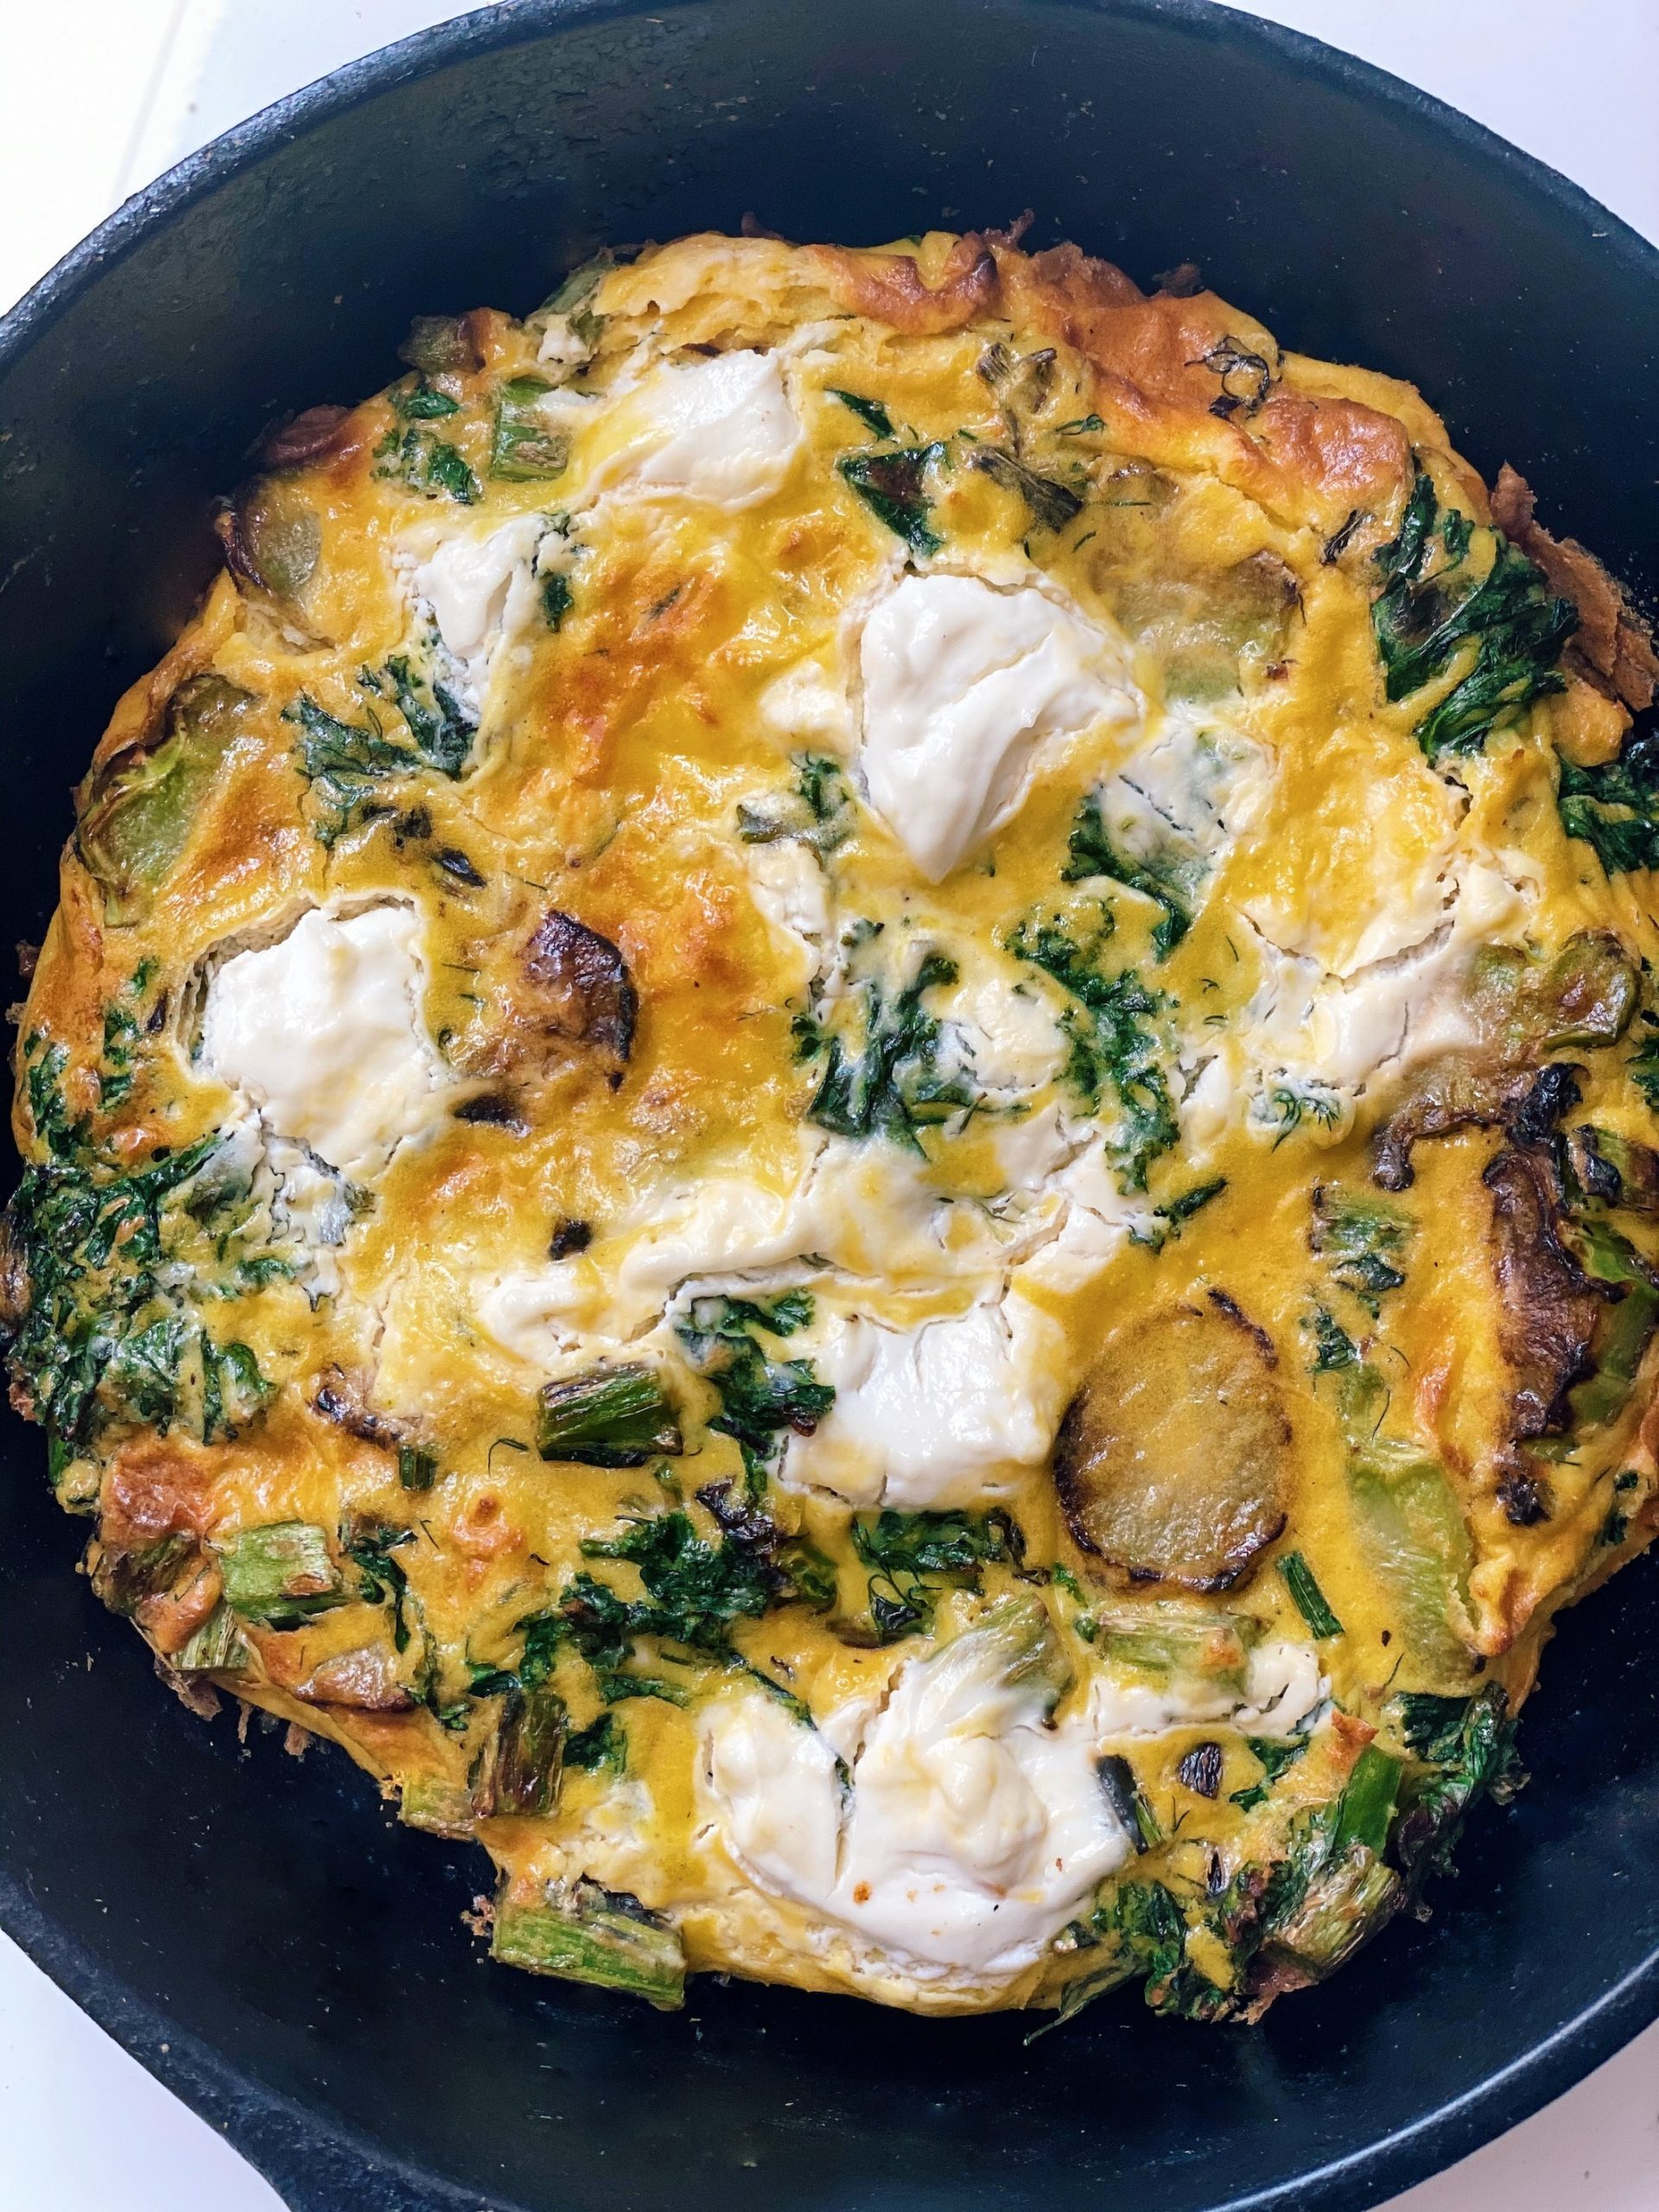 kale and broccoli stem frittata with dill and sour cream